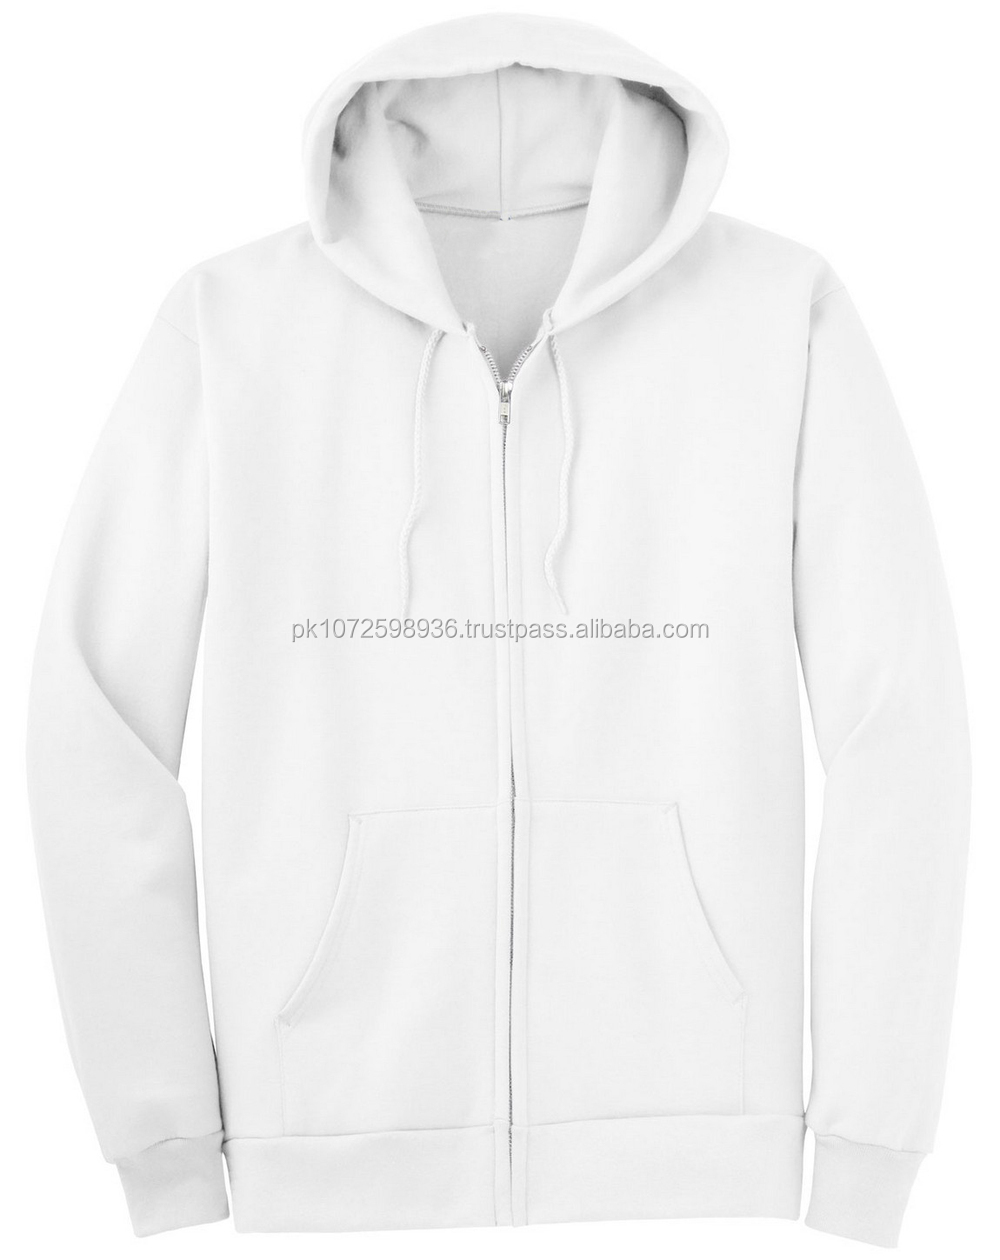 Cheap Men's Fleece Plain White Zip Up Hoodies/wholesale Blank ...